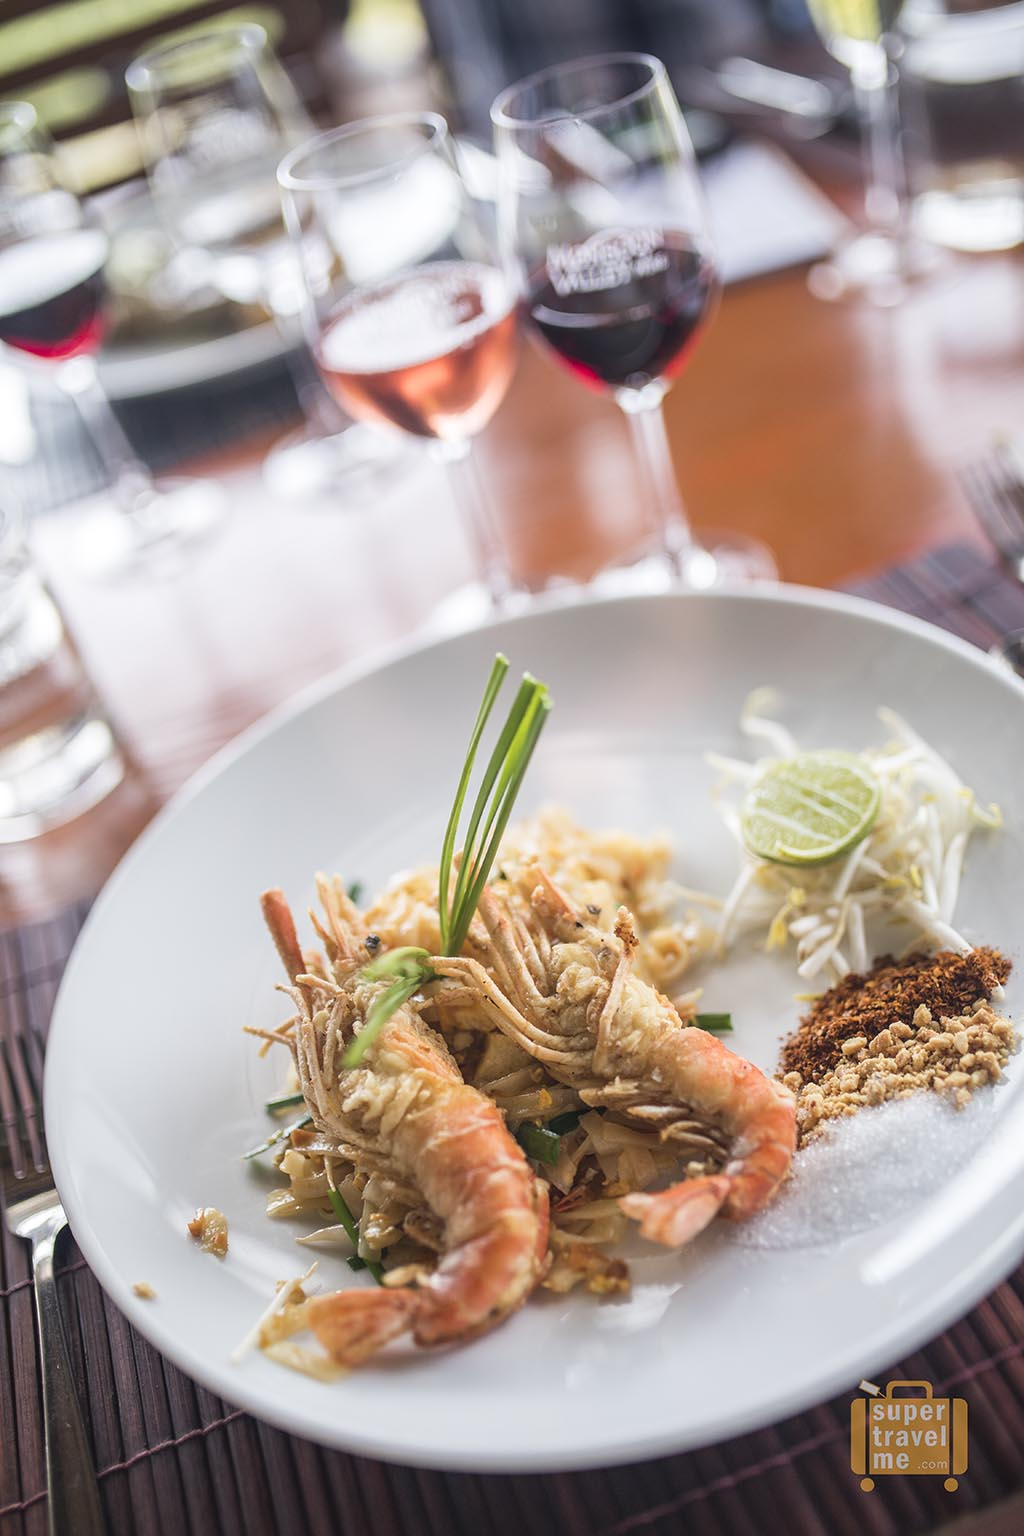 Dine at The Sala and enjoy a Pad Thai with a glass of wine